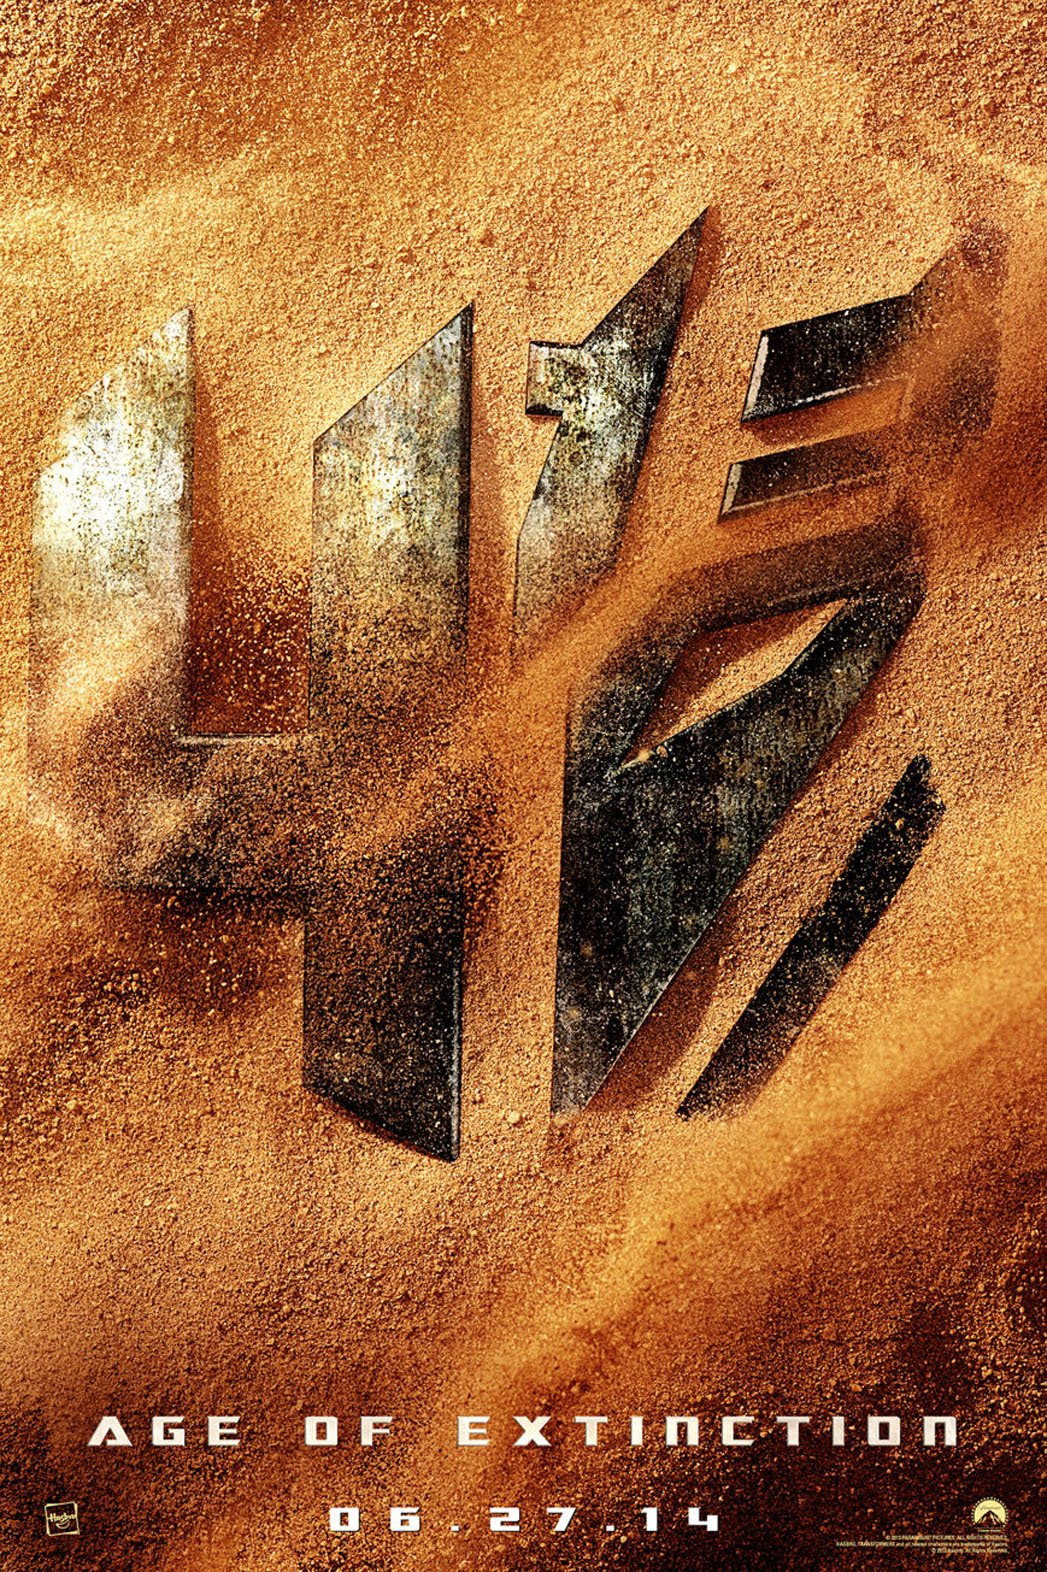 spoiler-image-from-transformers-age-of-extinction-header.jpg